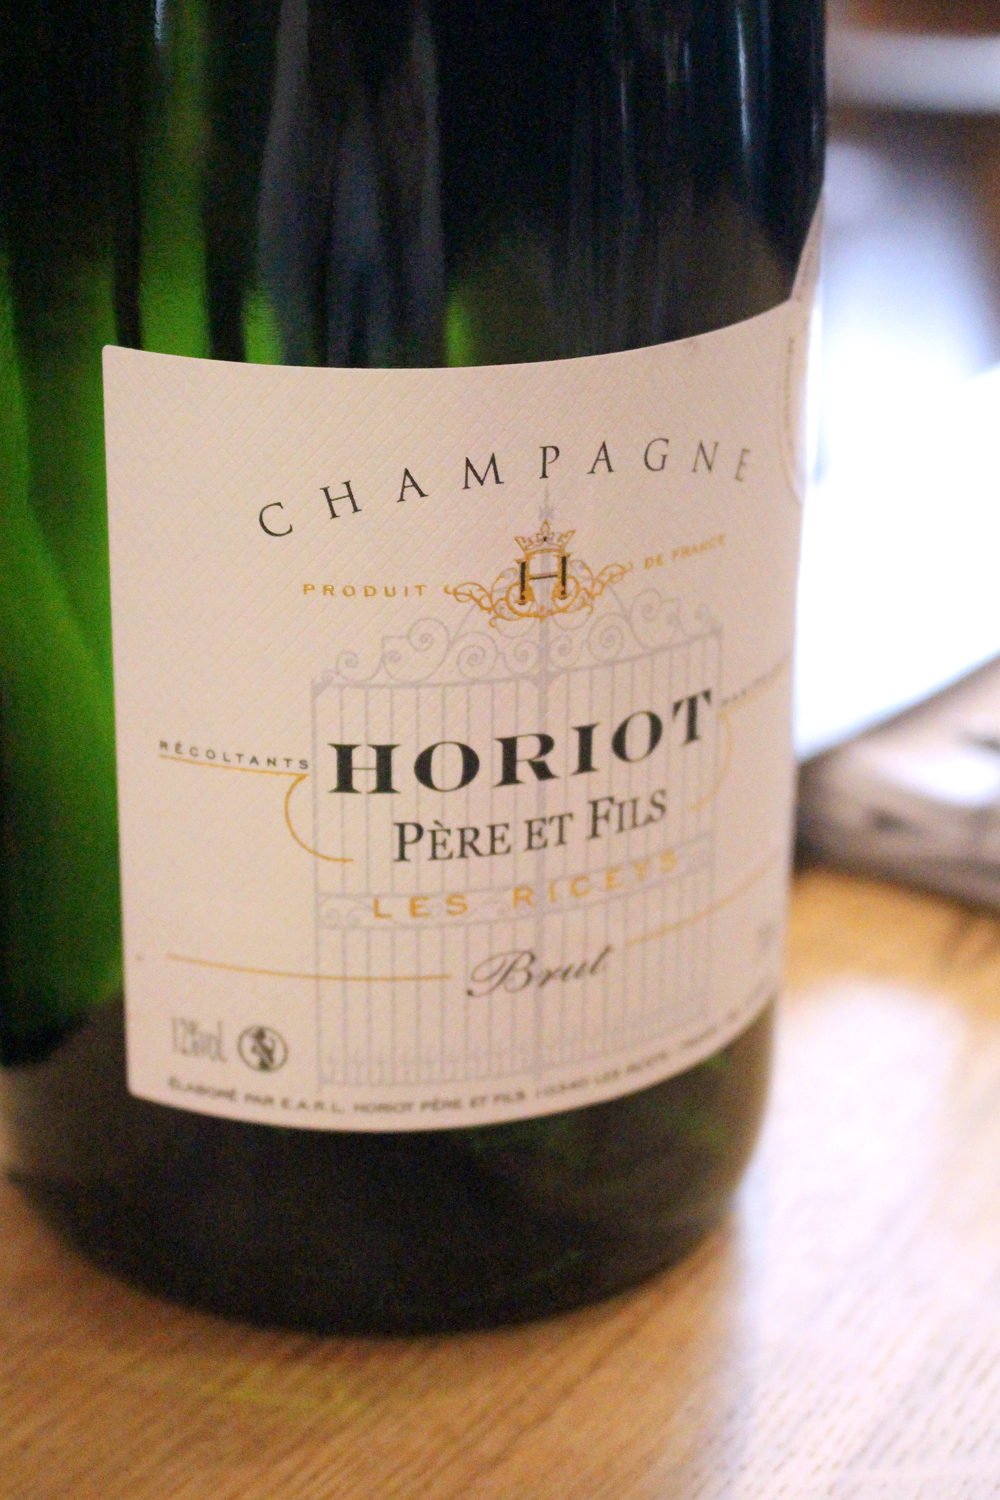 Champagne Horiot Pere et Fils at Club Marot Lille - travel & lifestyle blog